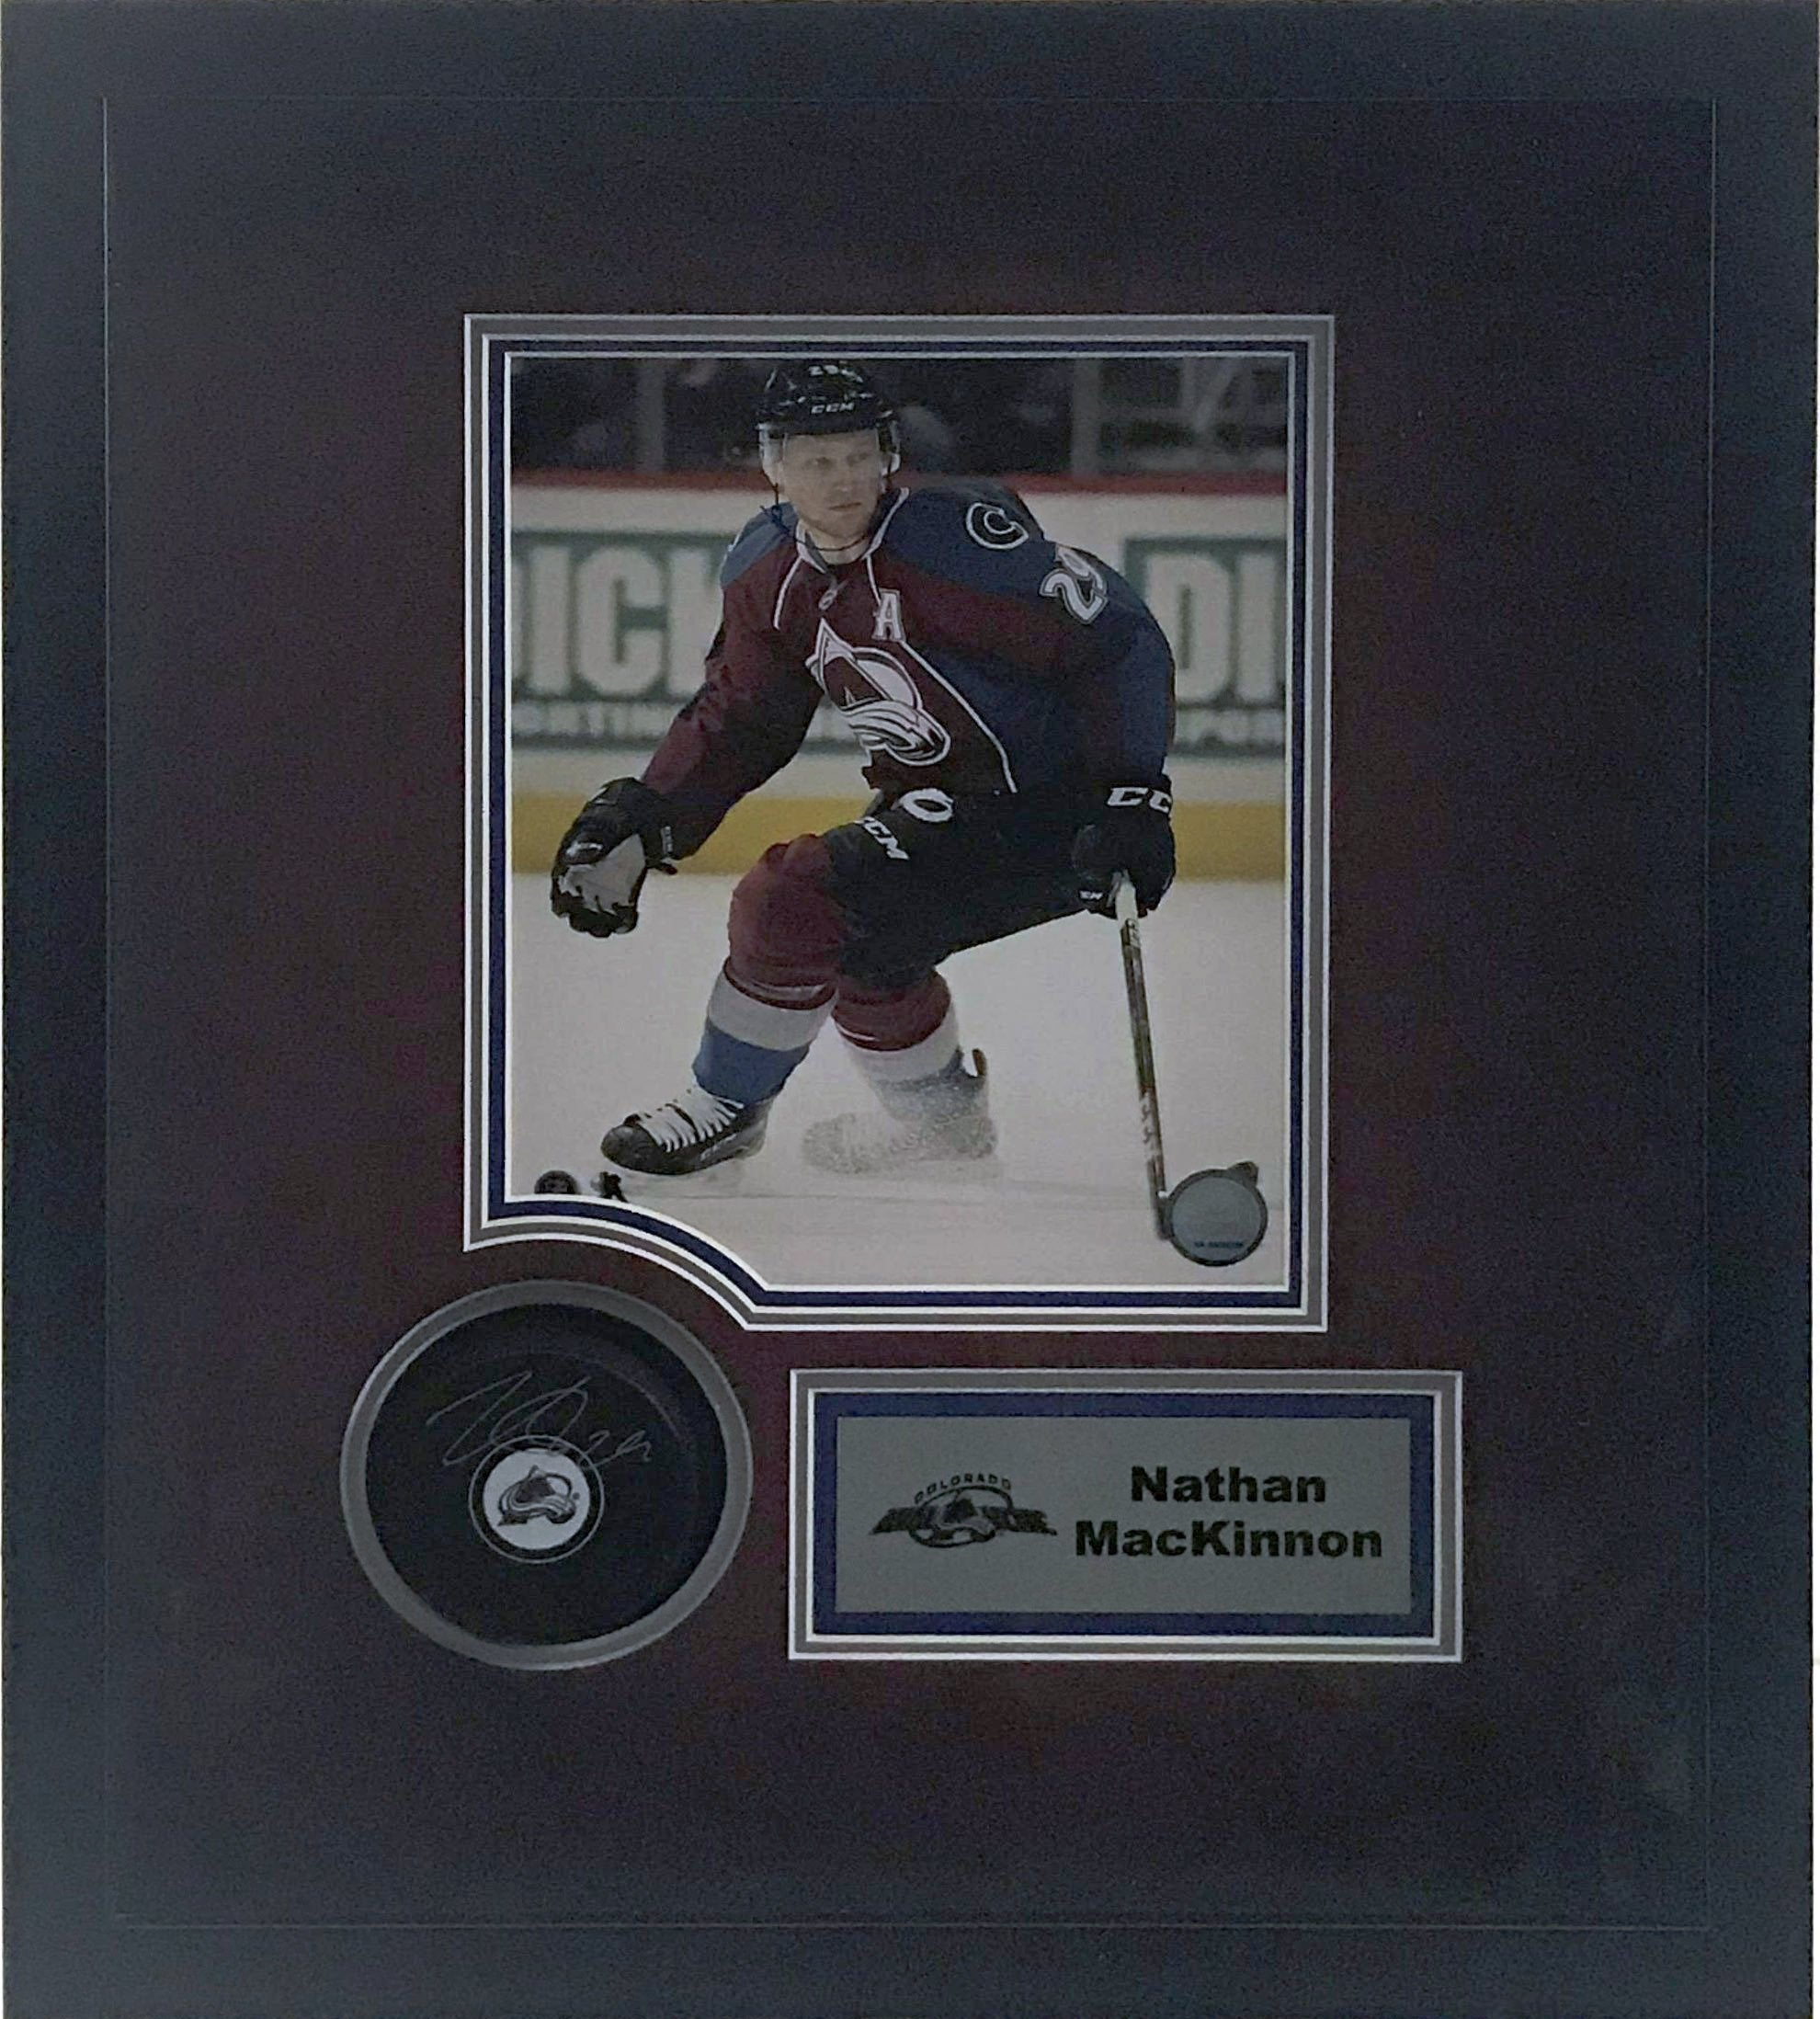 Nathan MacKinnon Autographed Avalanche Hockey Puck with Shadow Box